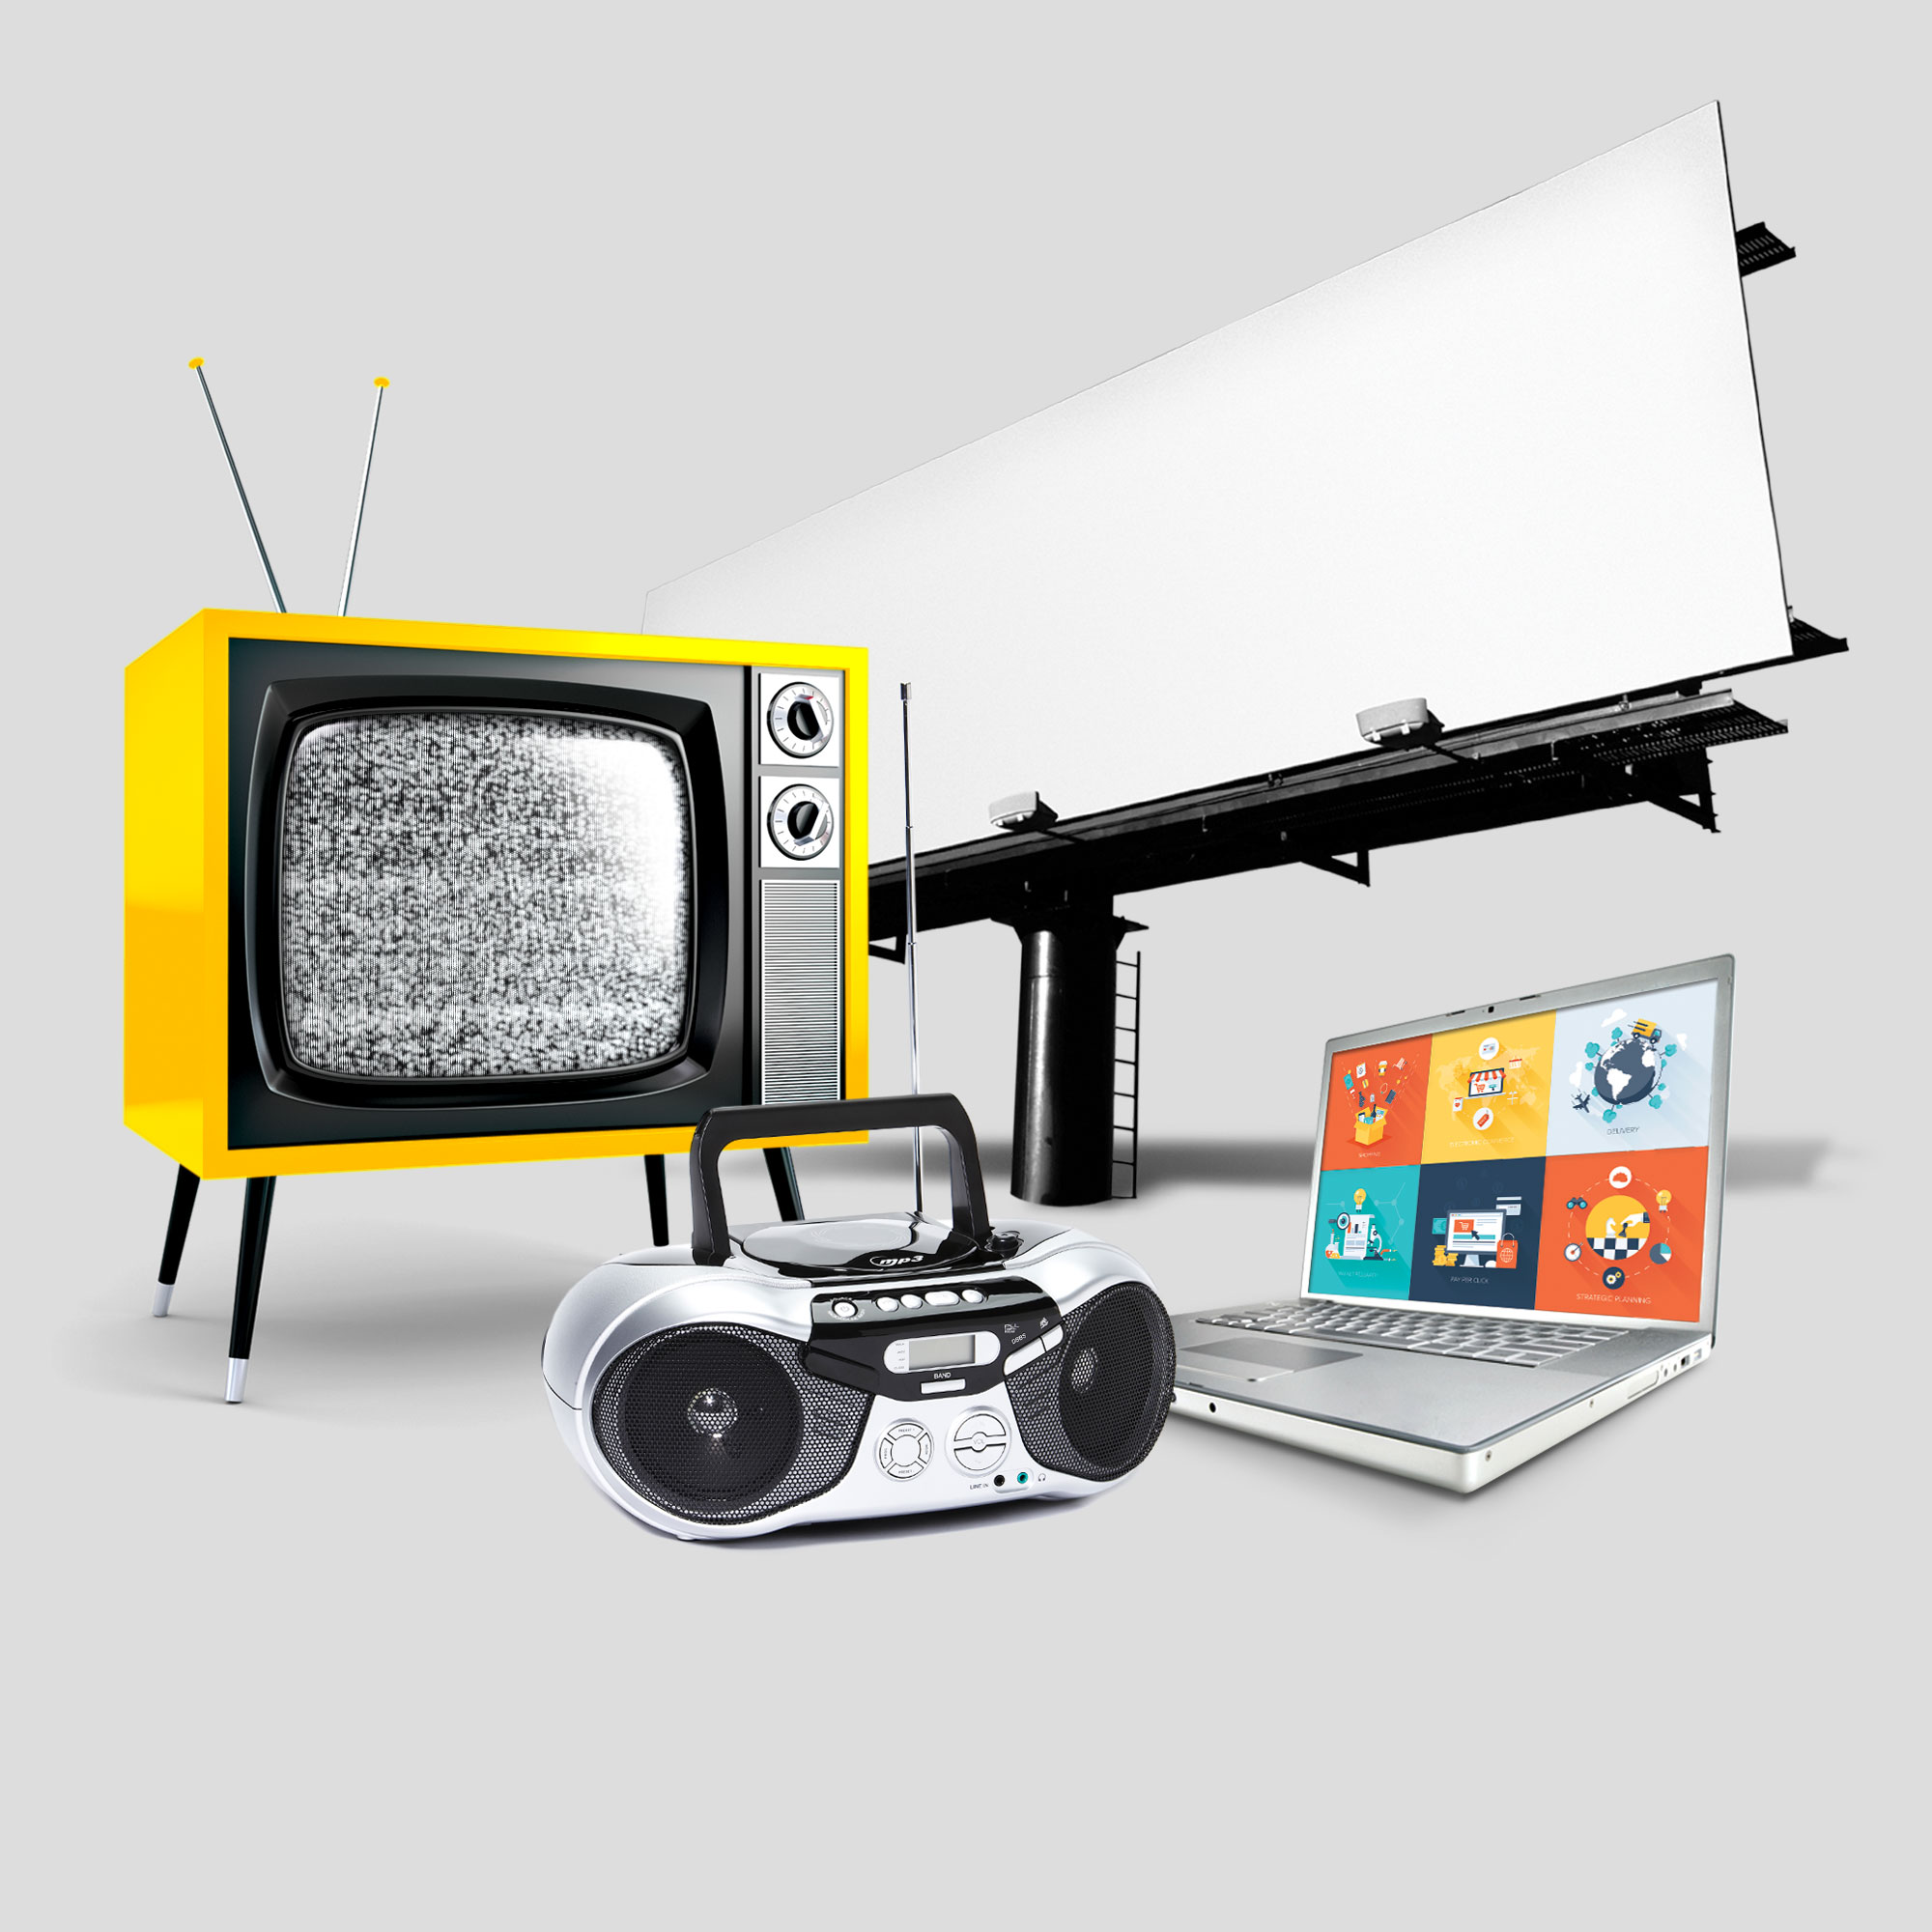 Television and other advertising mediums.